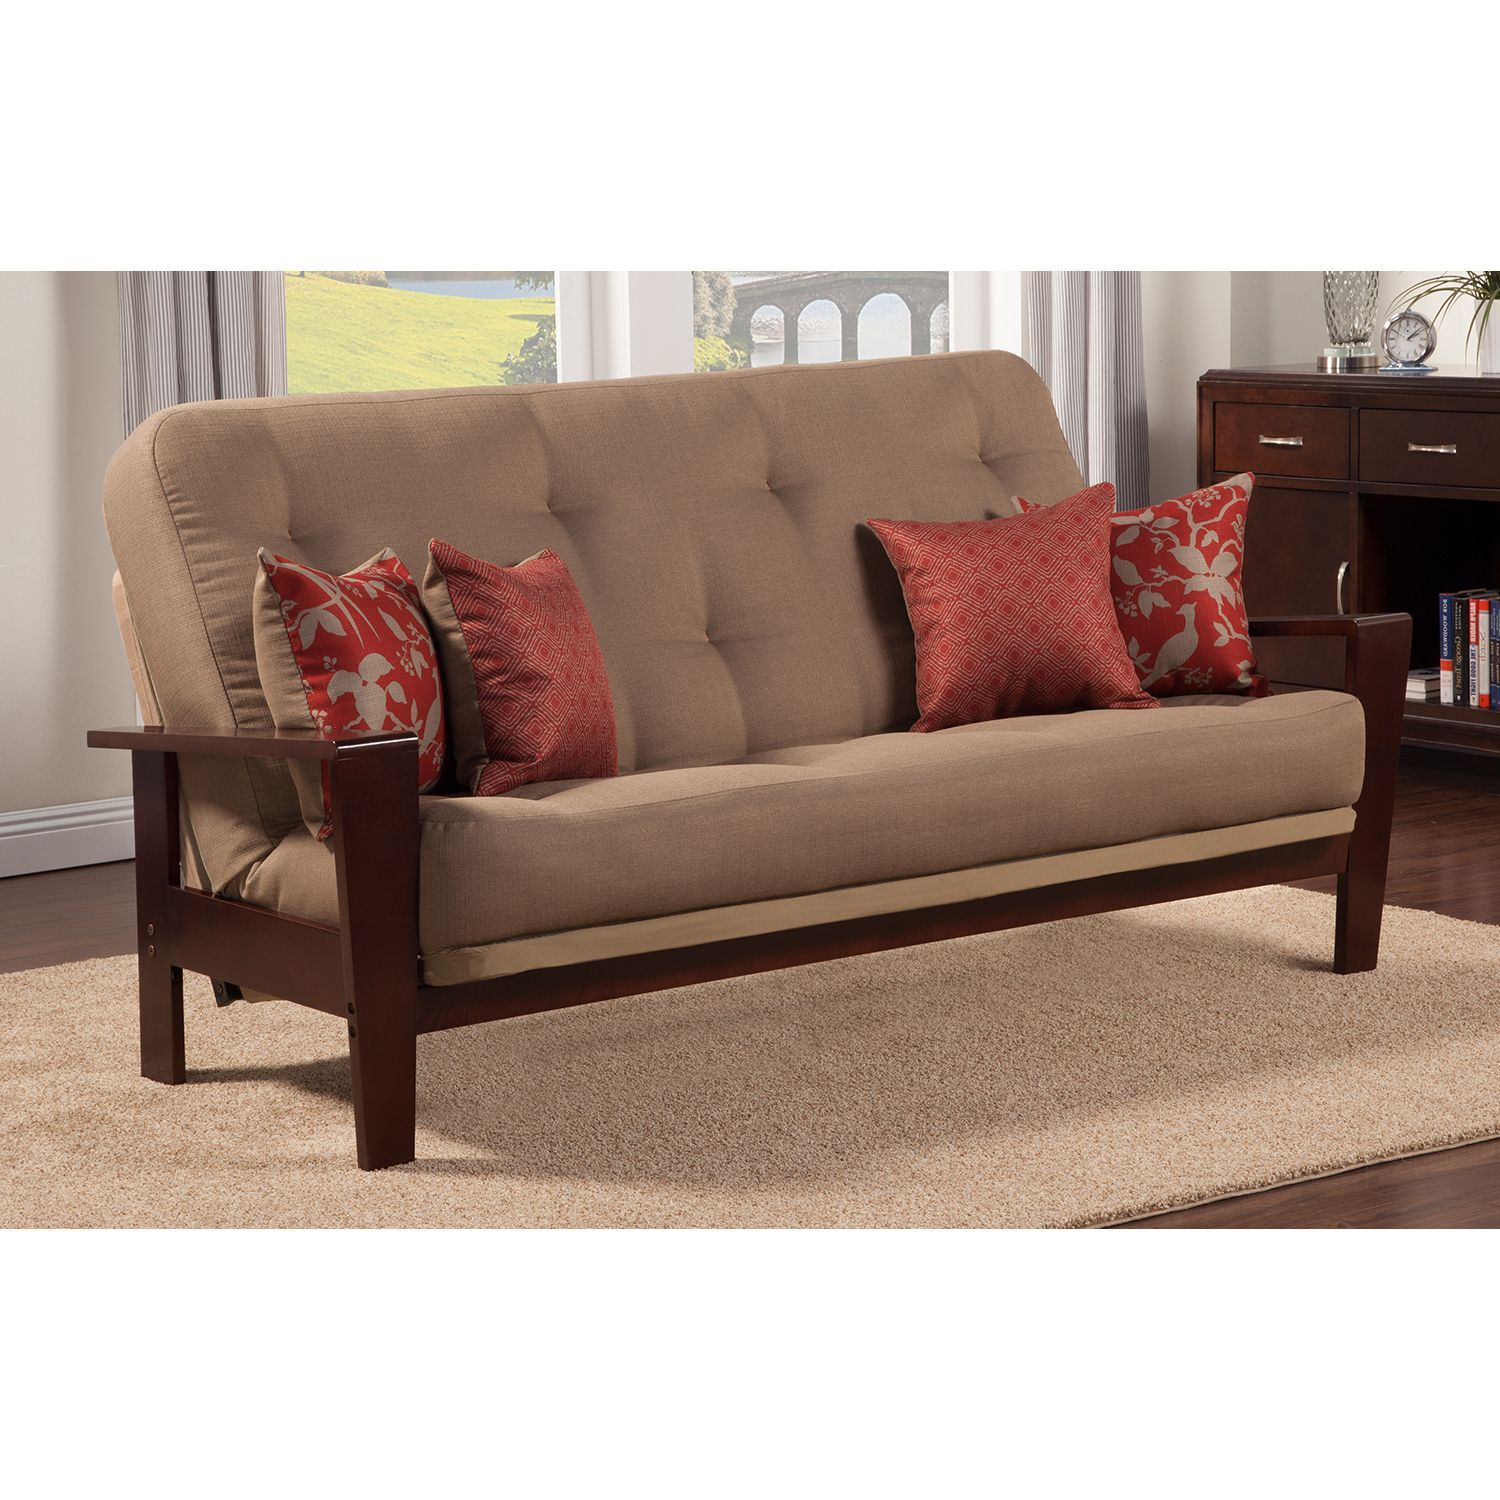 Asana Futon Sam S Club